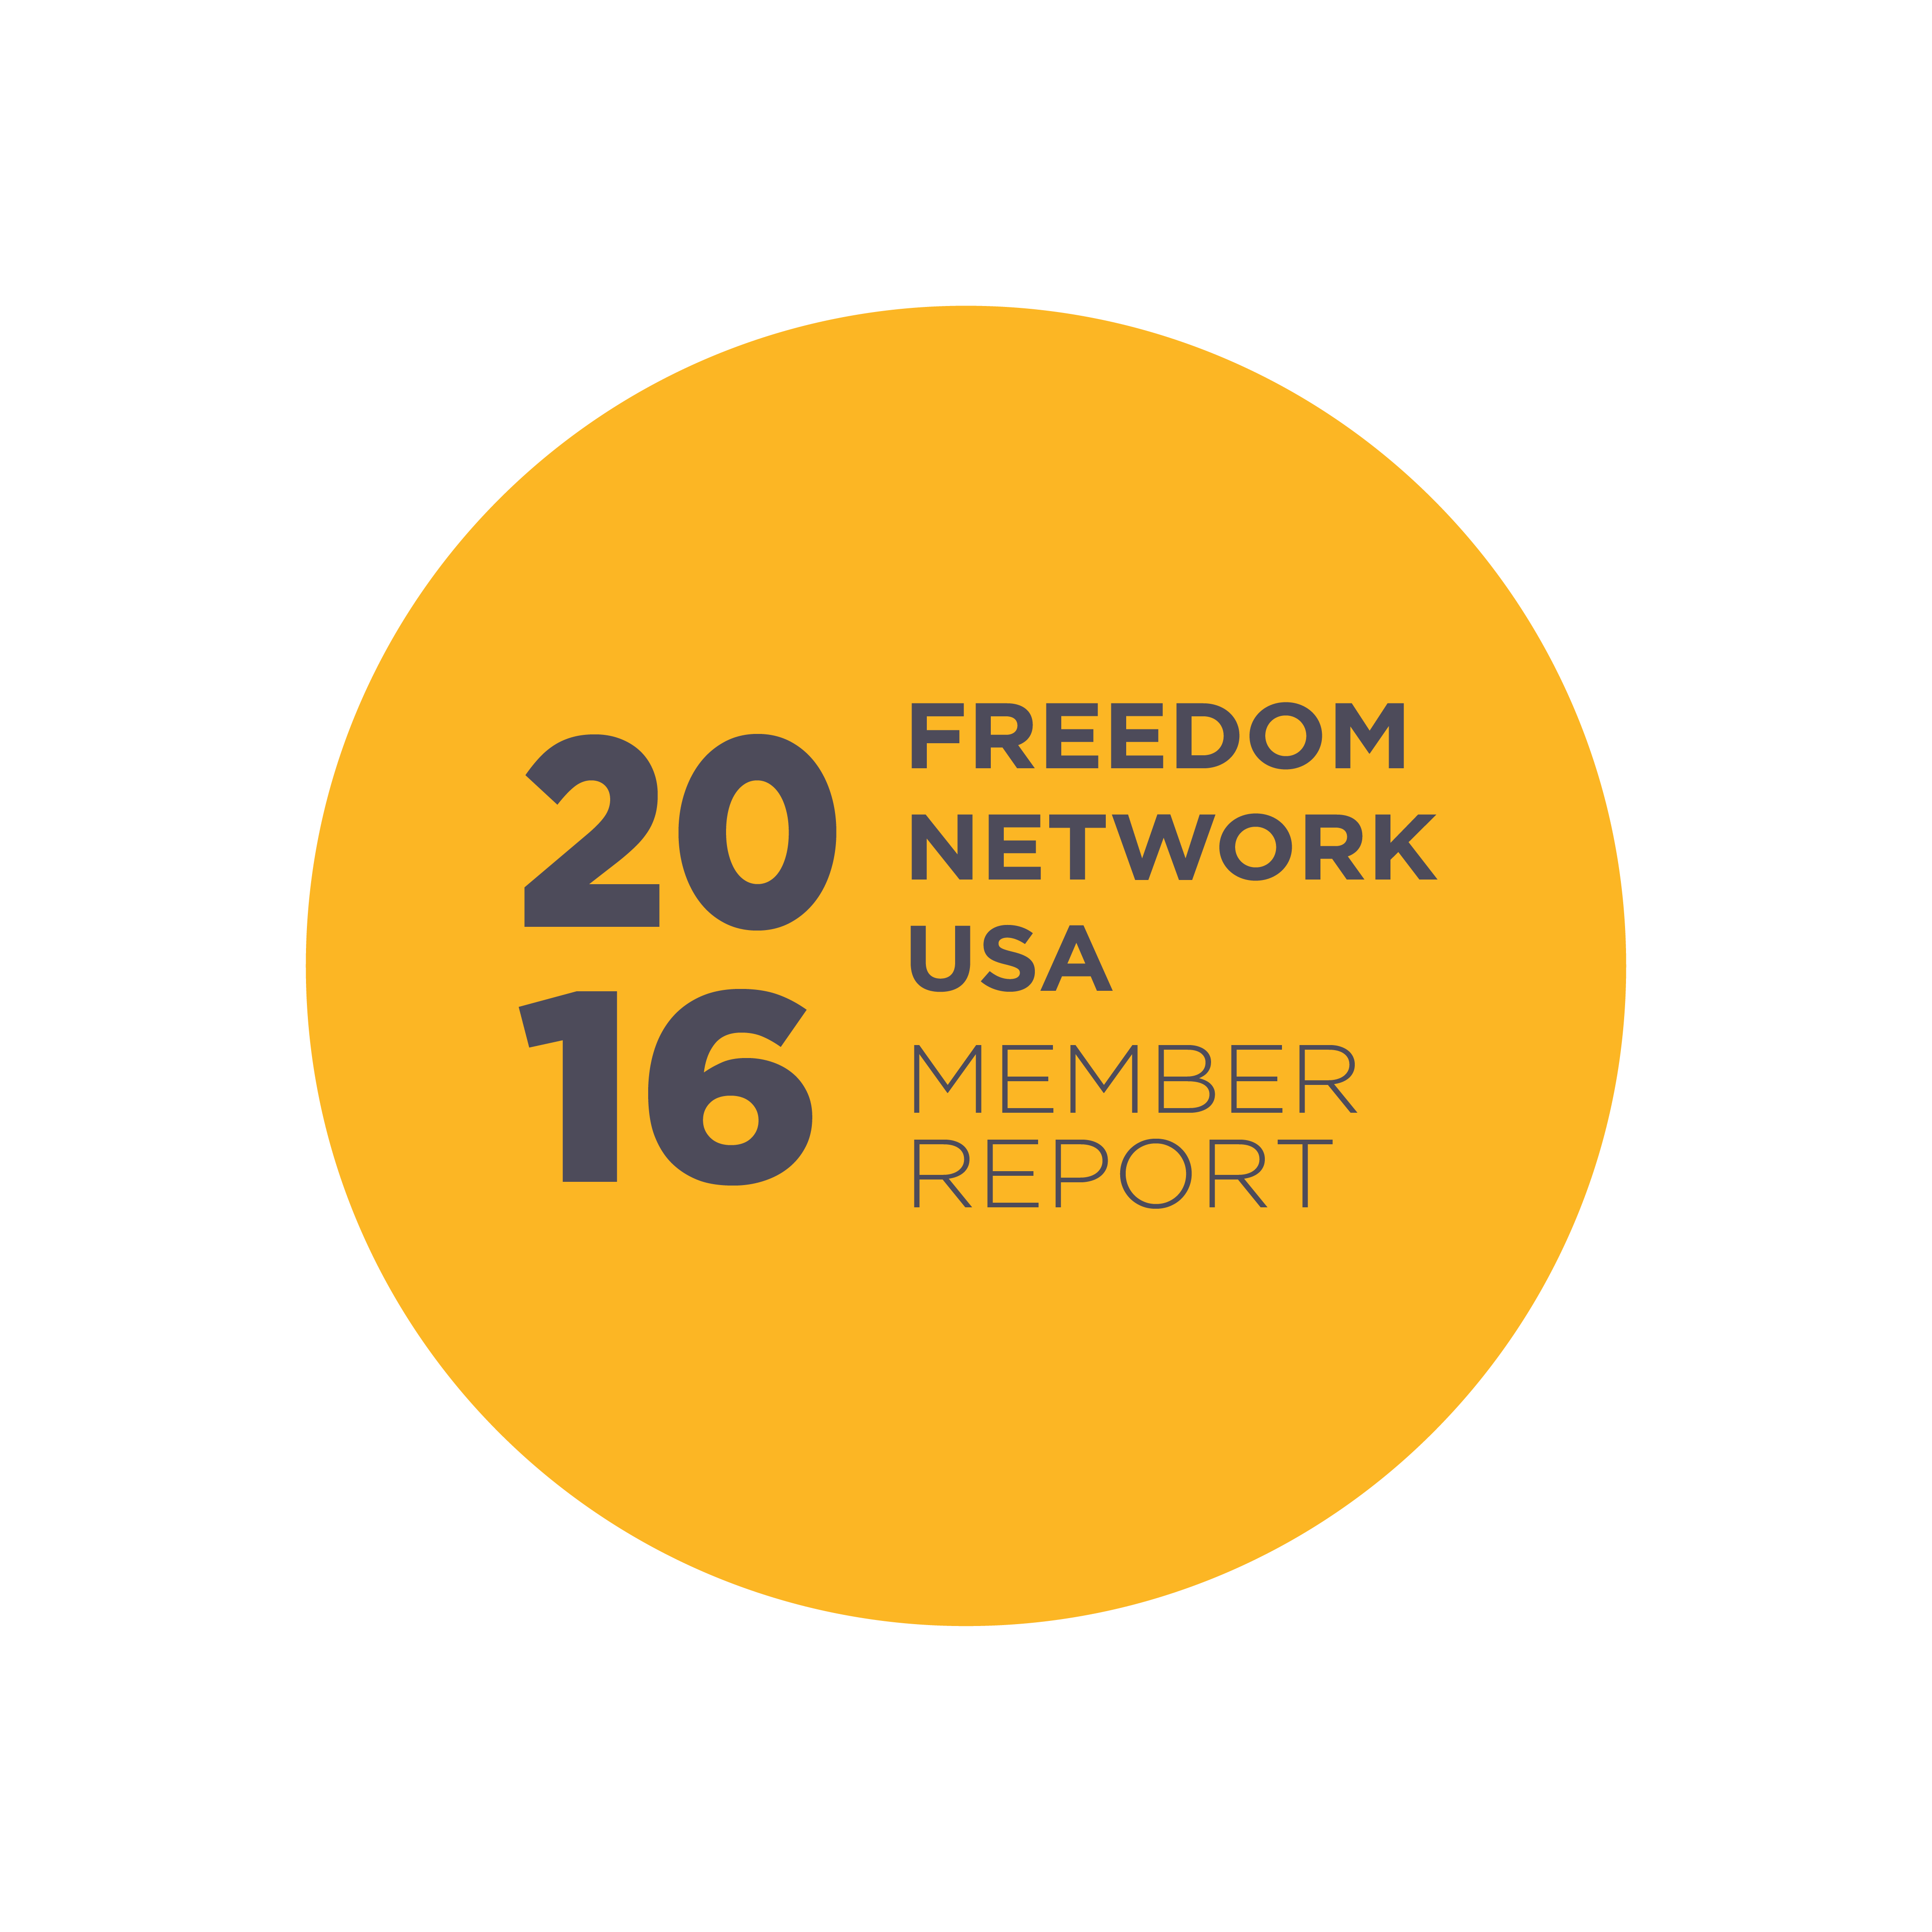 2016 freedom network usa member report